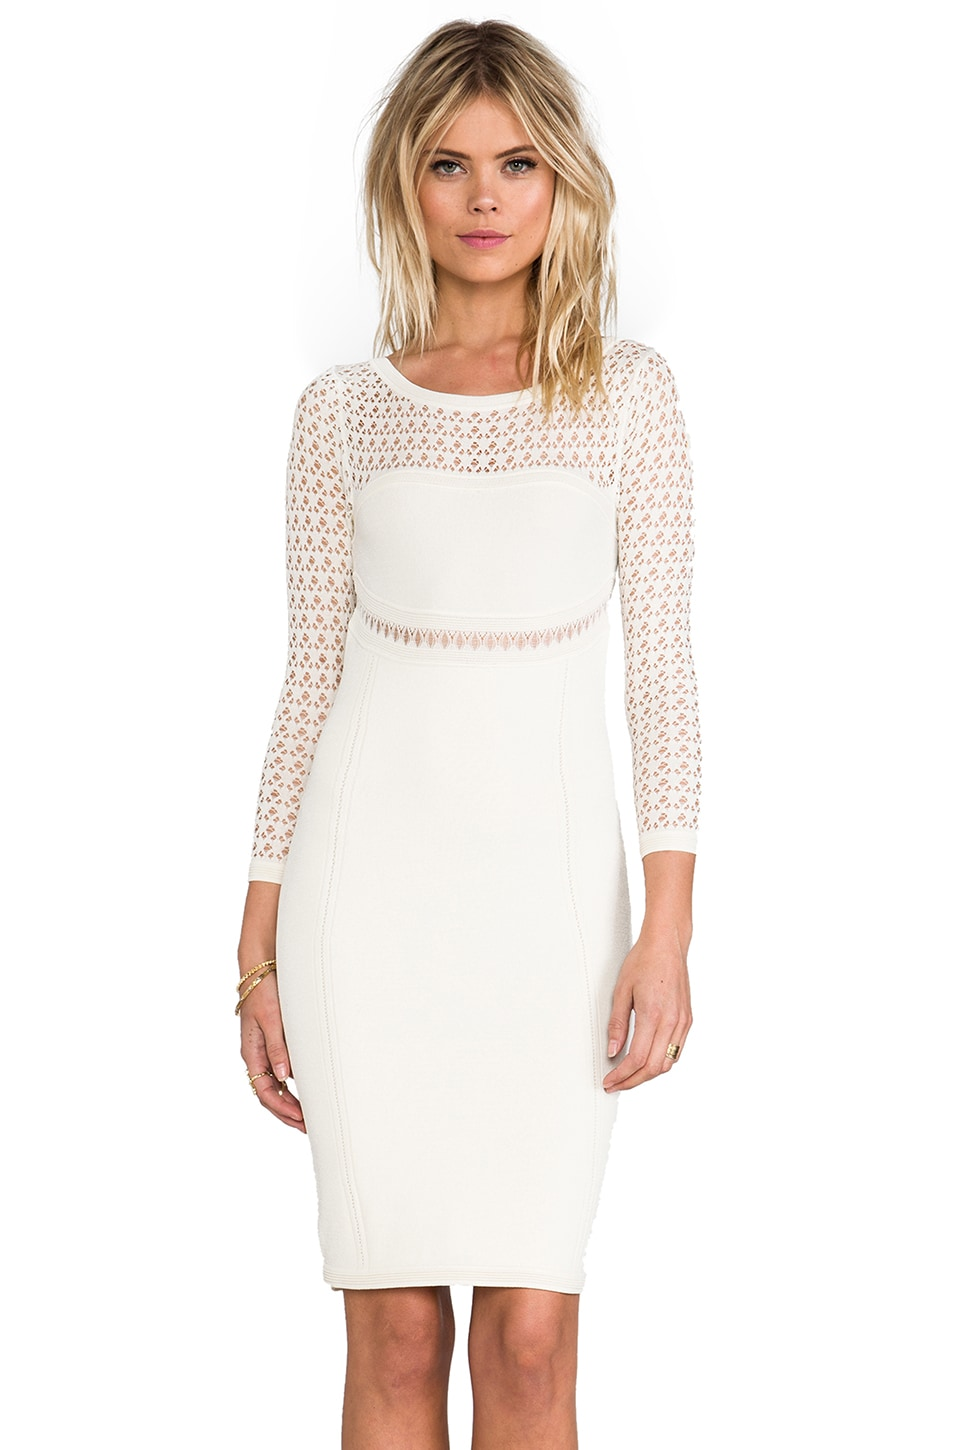 Catherine Malandrino Brooklyn Pointelle Dress in Ivory